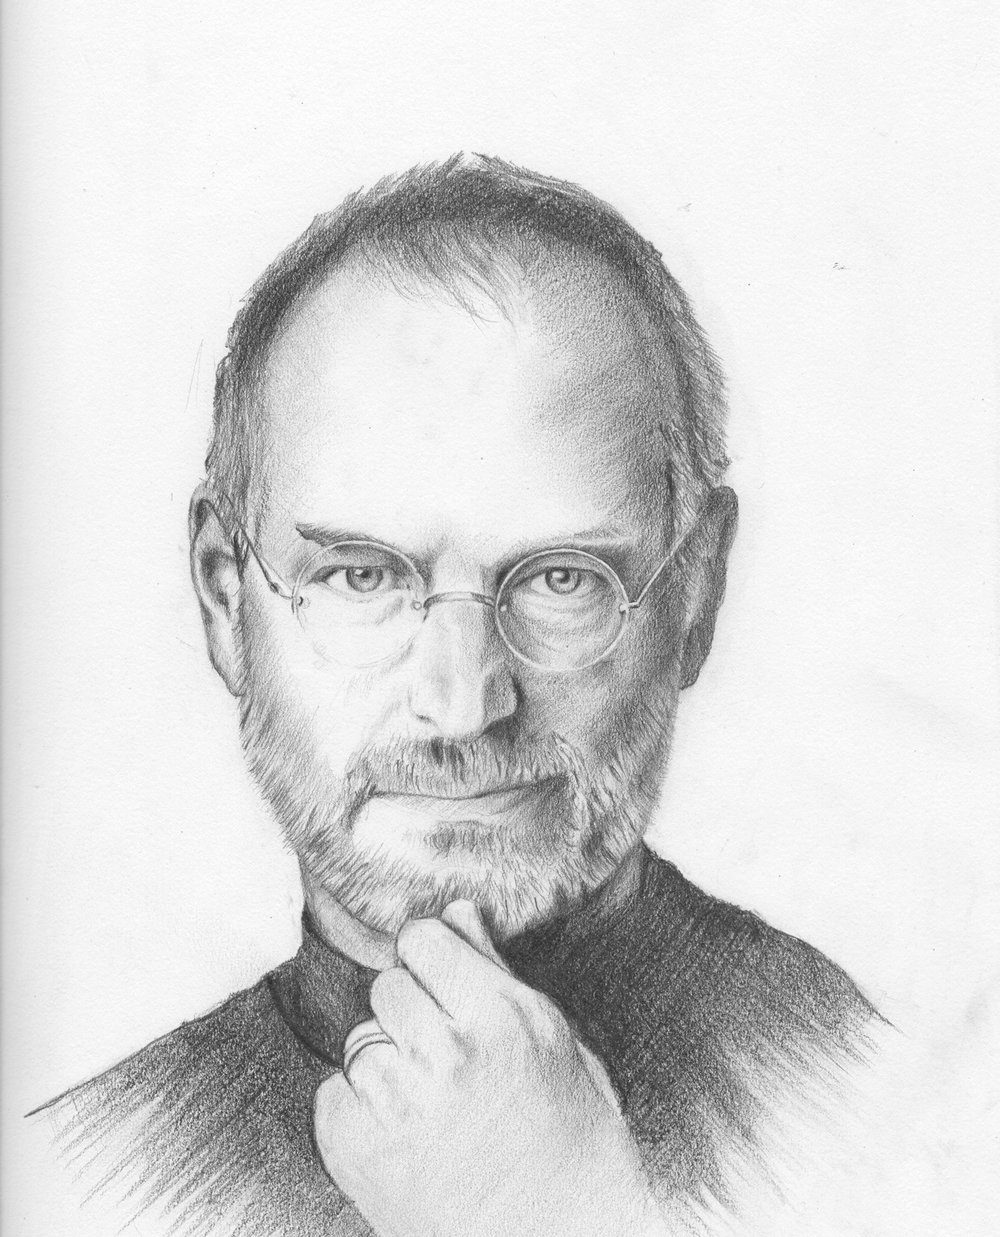 Steve Jobs.  2012 // graphite pencil portrait drawing.